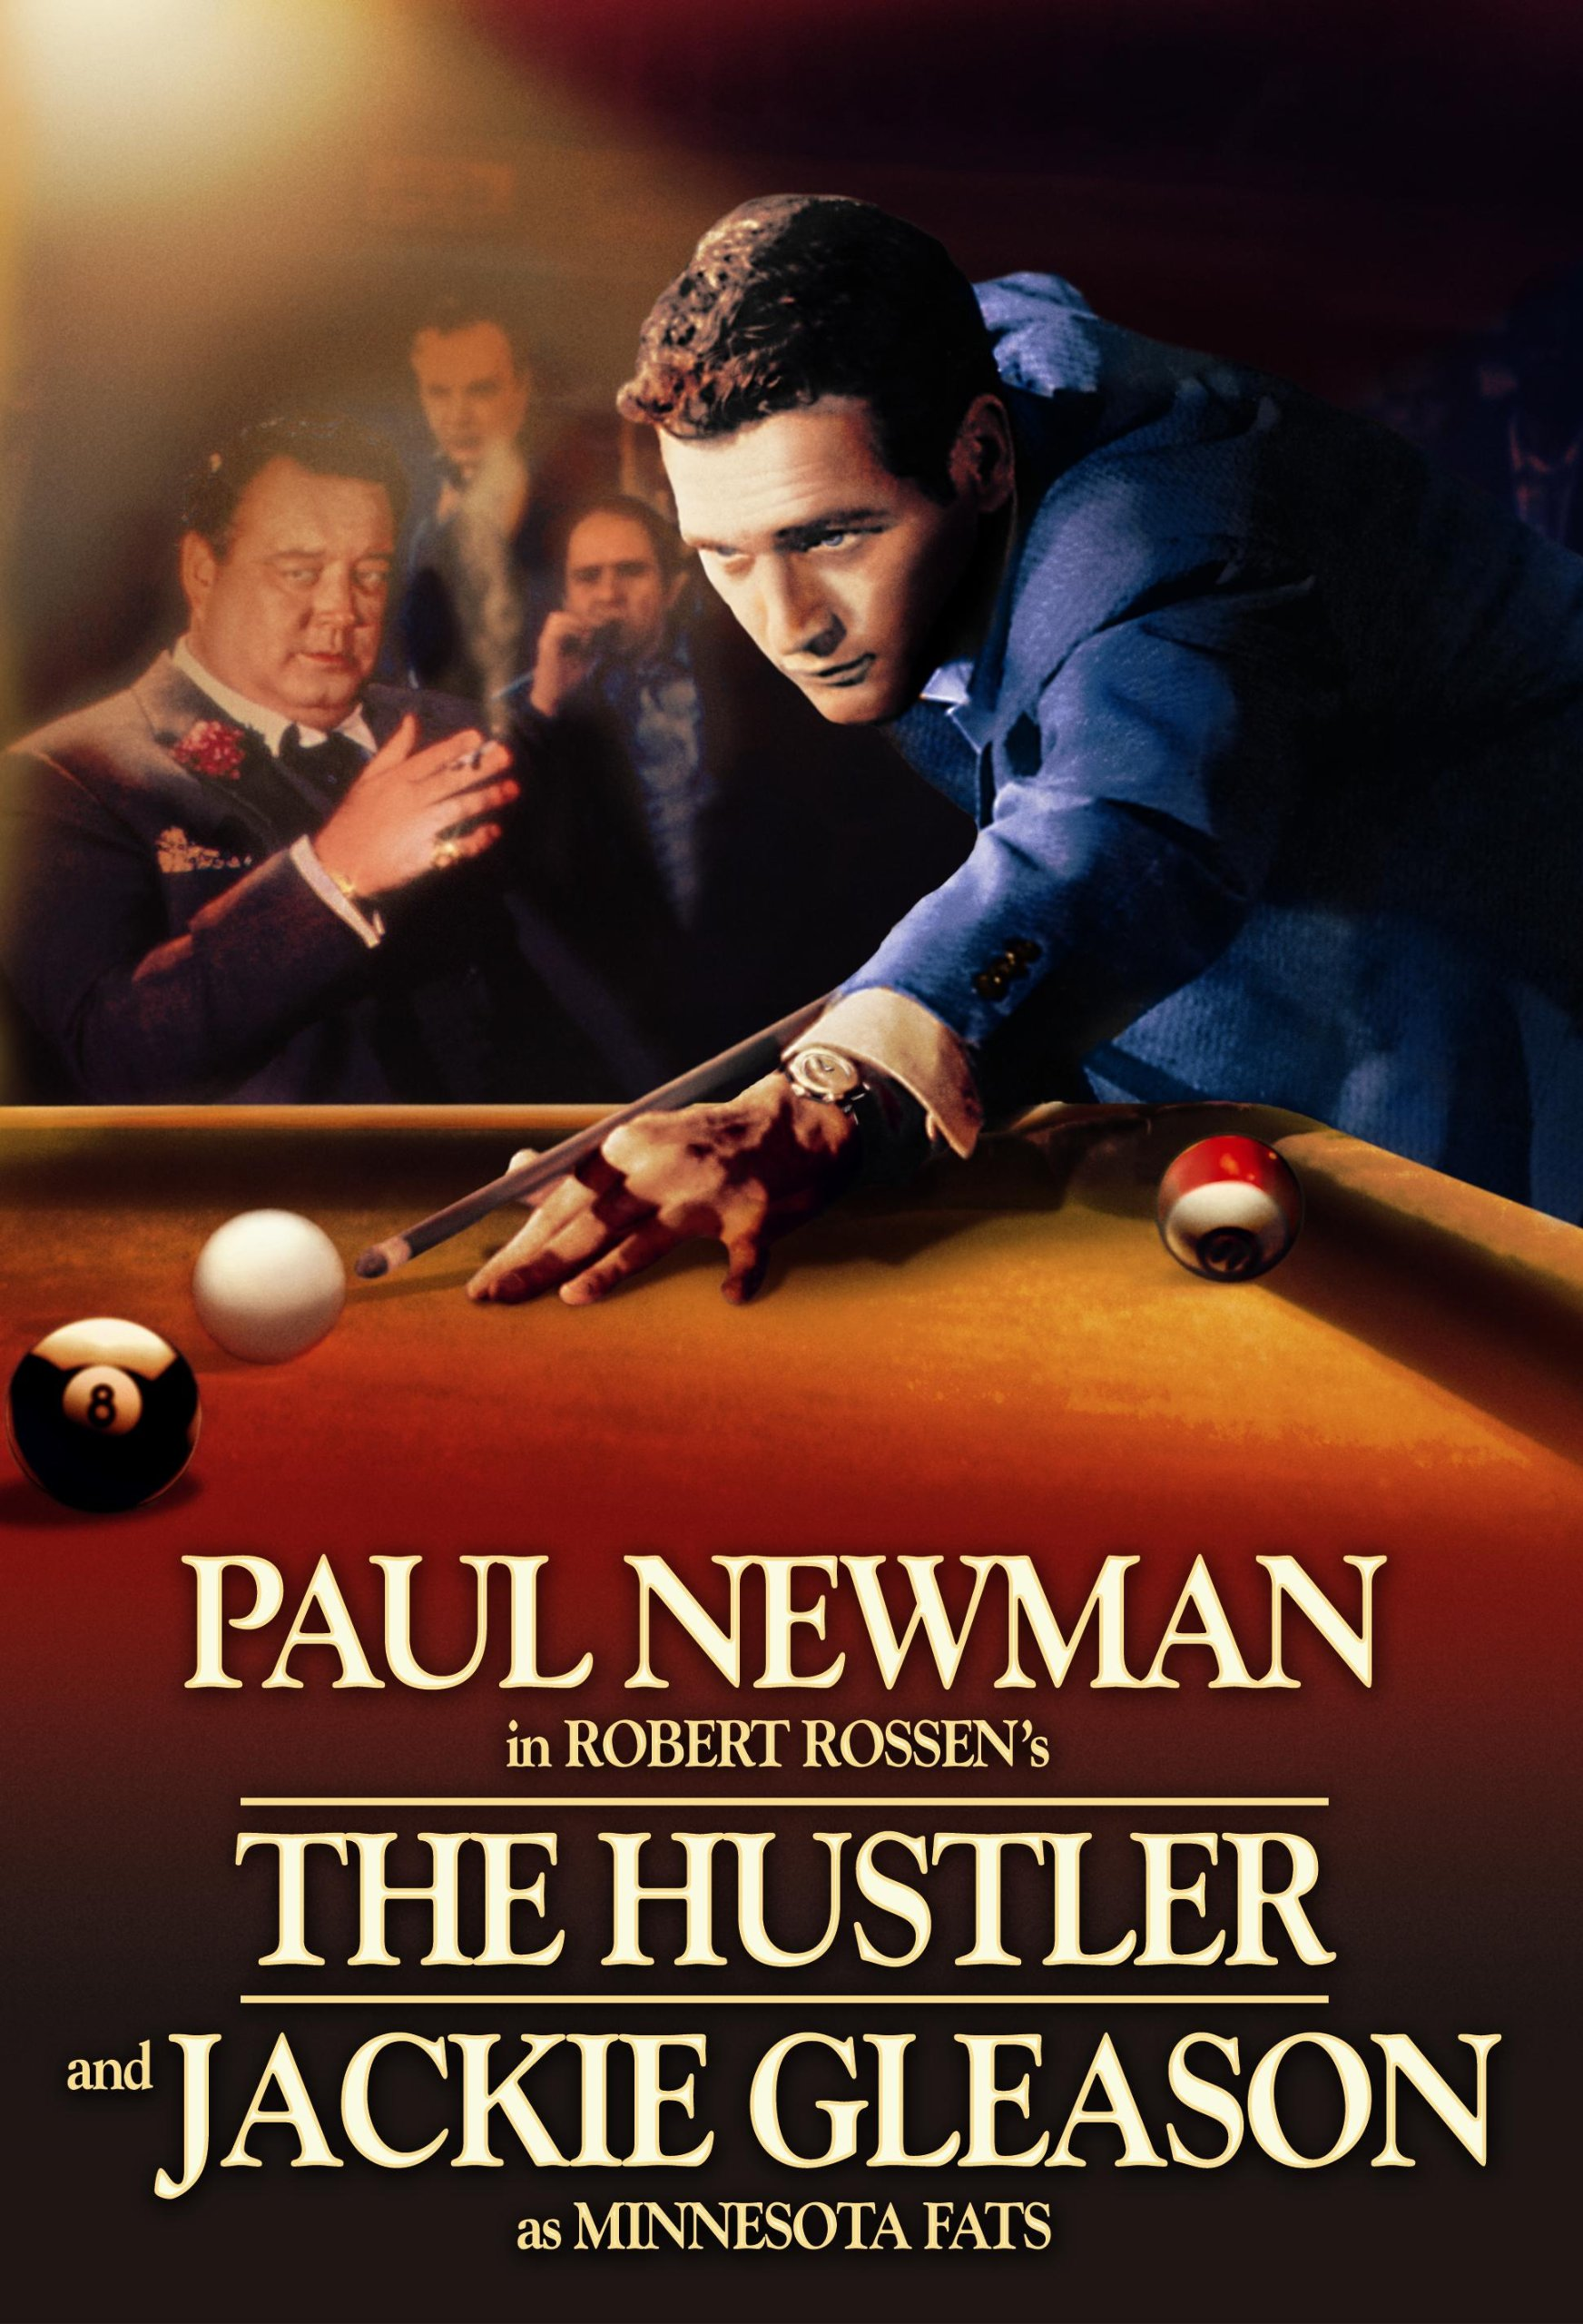 Free full movie of the hustler about still